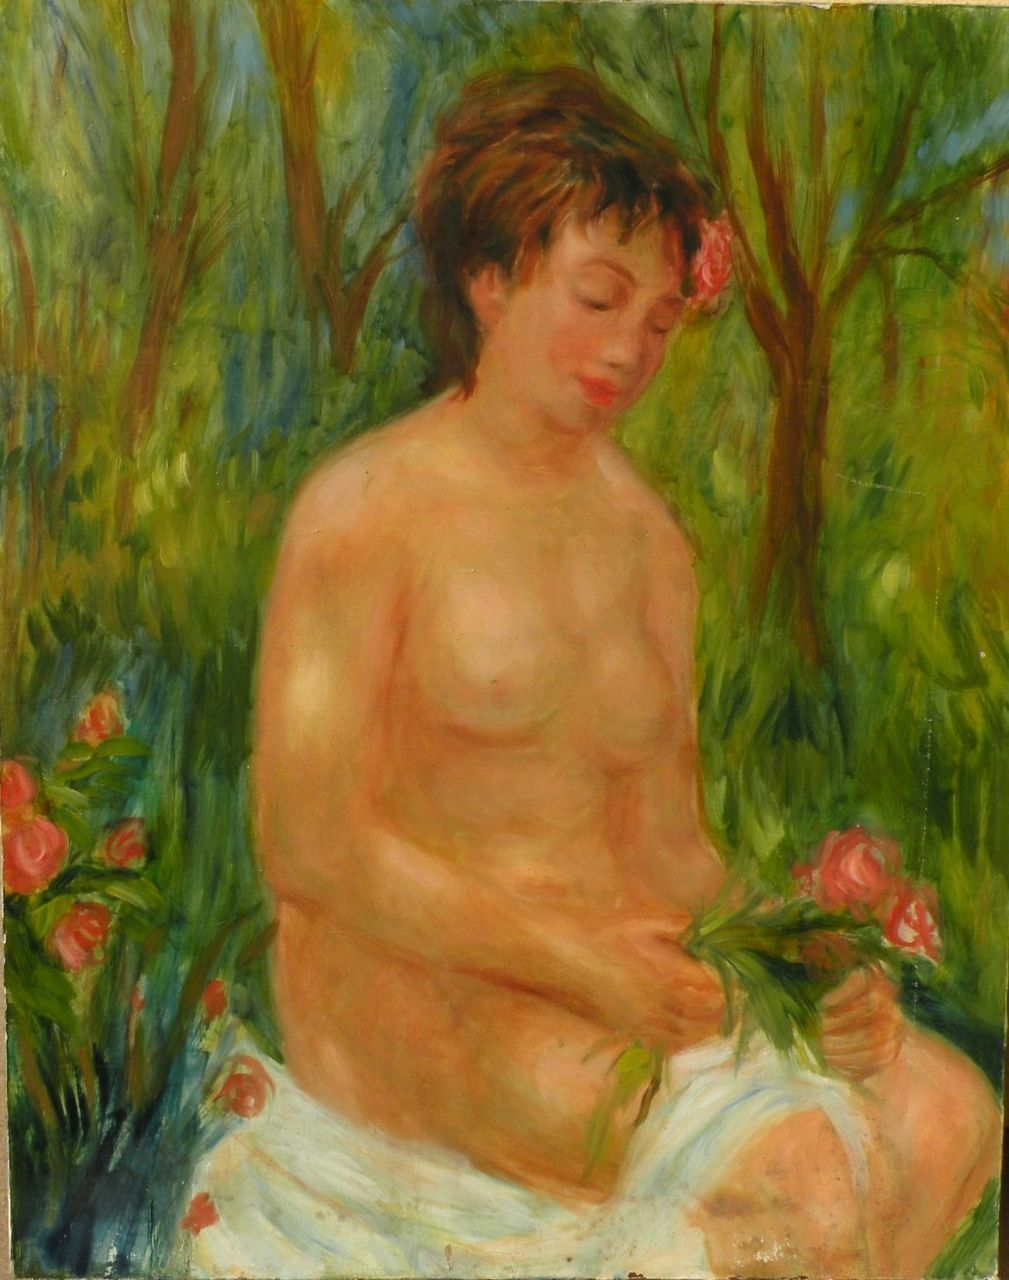 GREGORY FRANK HARRIS (1953-) impressionist painting of young nude by noted American contemporary artist